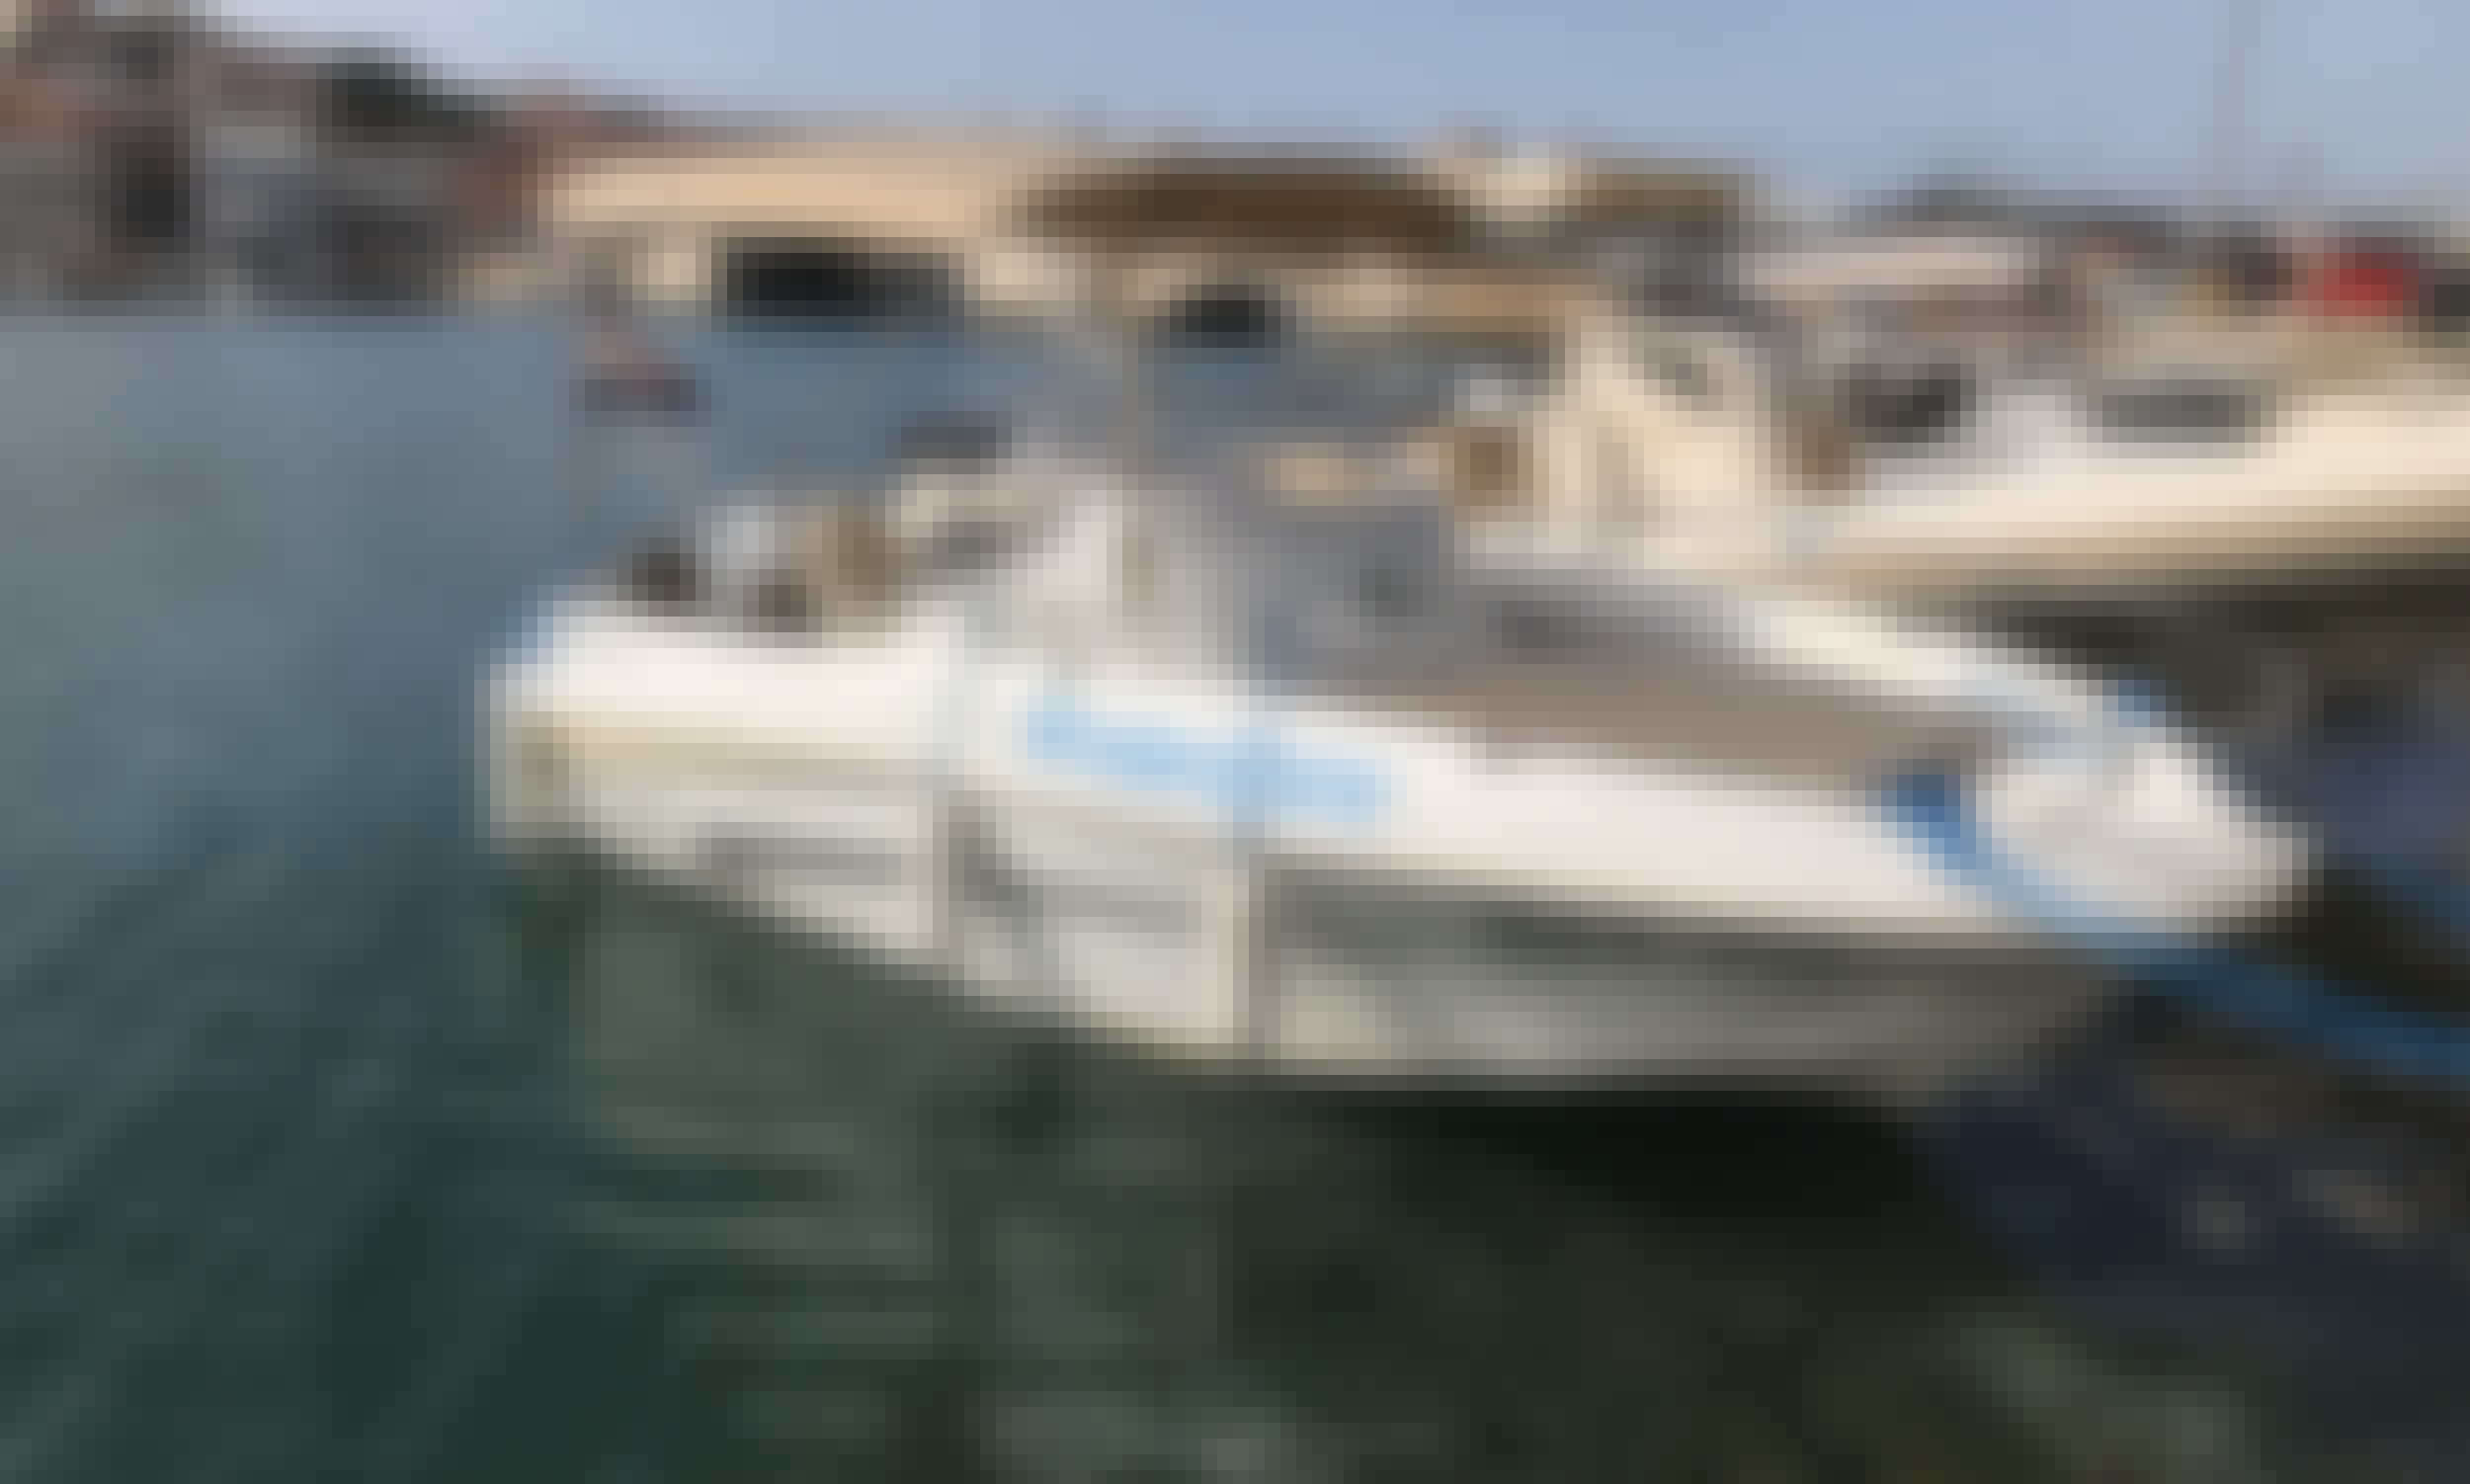 Beneteau Flyer 550 Sun Deck - Rental in Trogir, Croatia - Cuddy Cabin/Walk Around